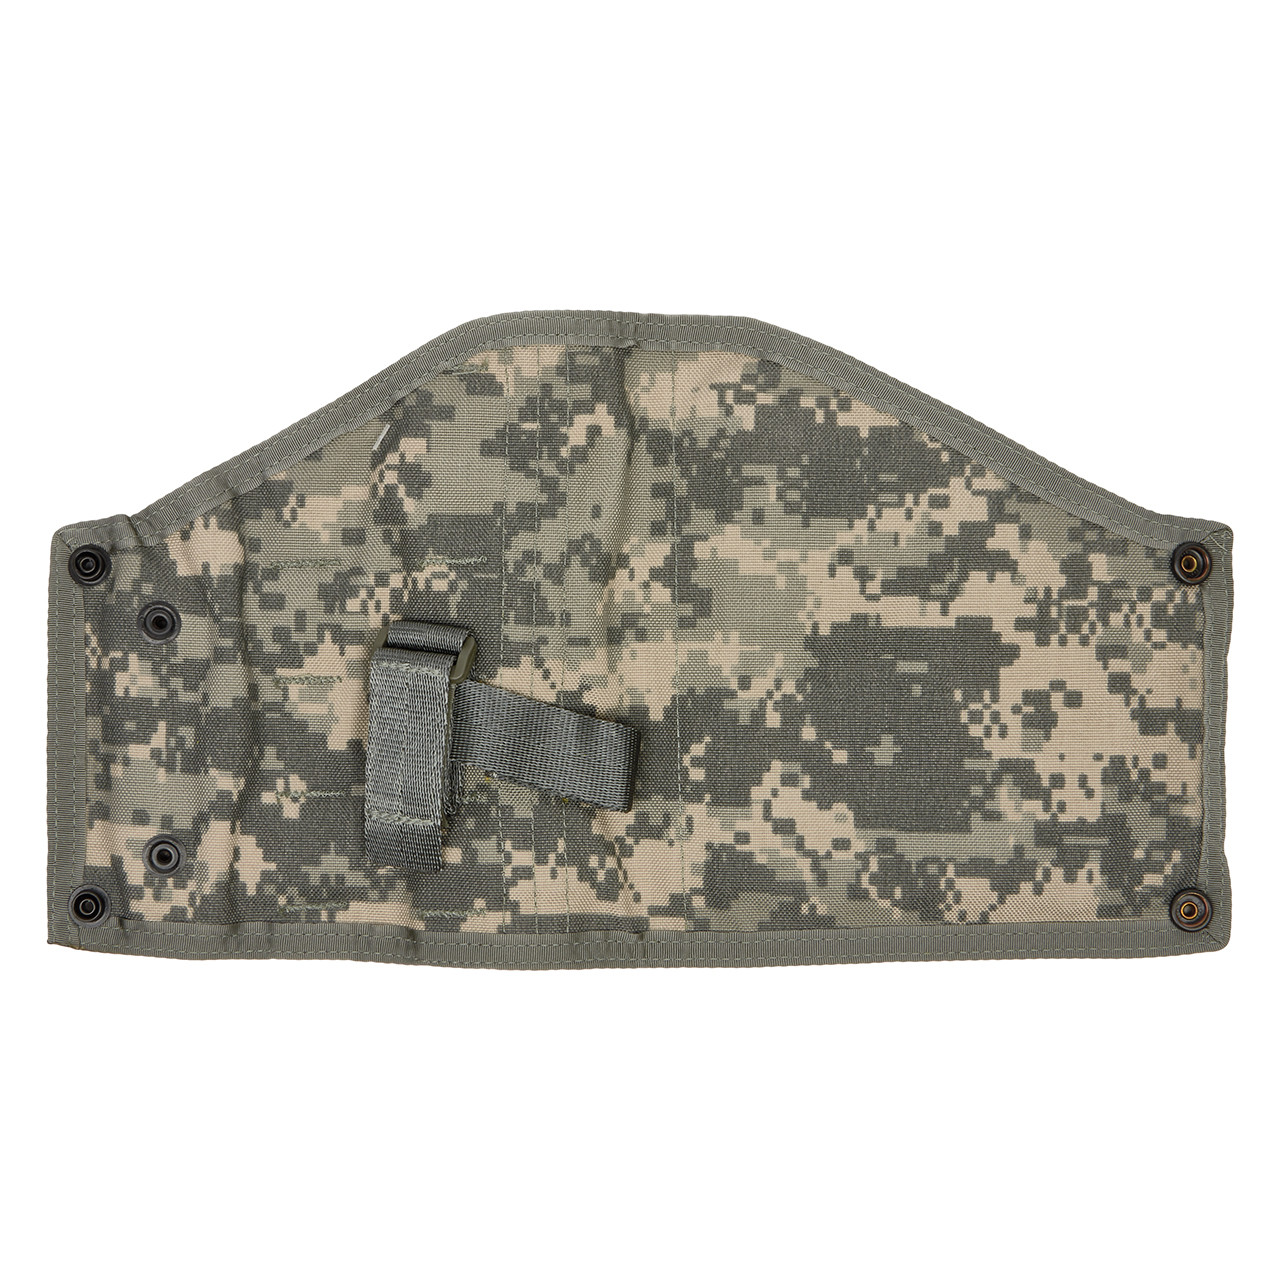 50442 CQB ENTRY TOOL CARRY POUCH